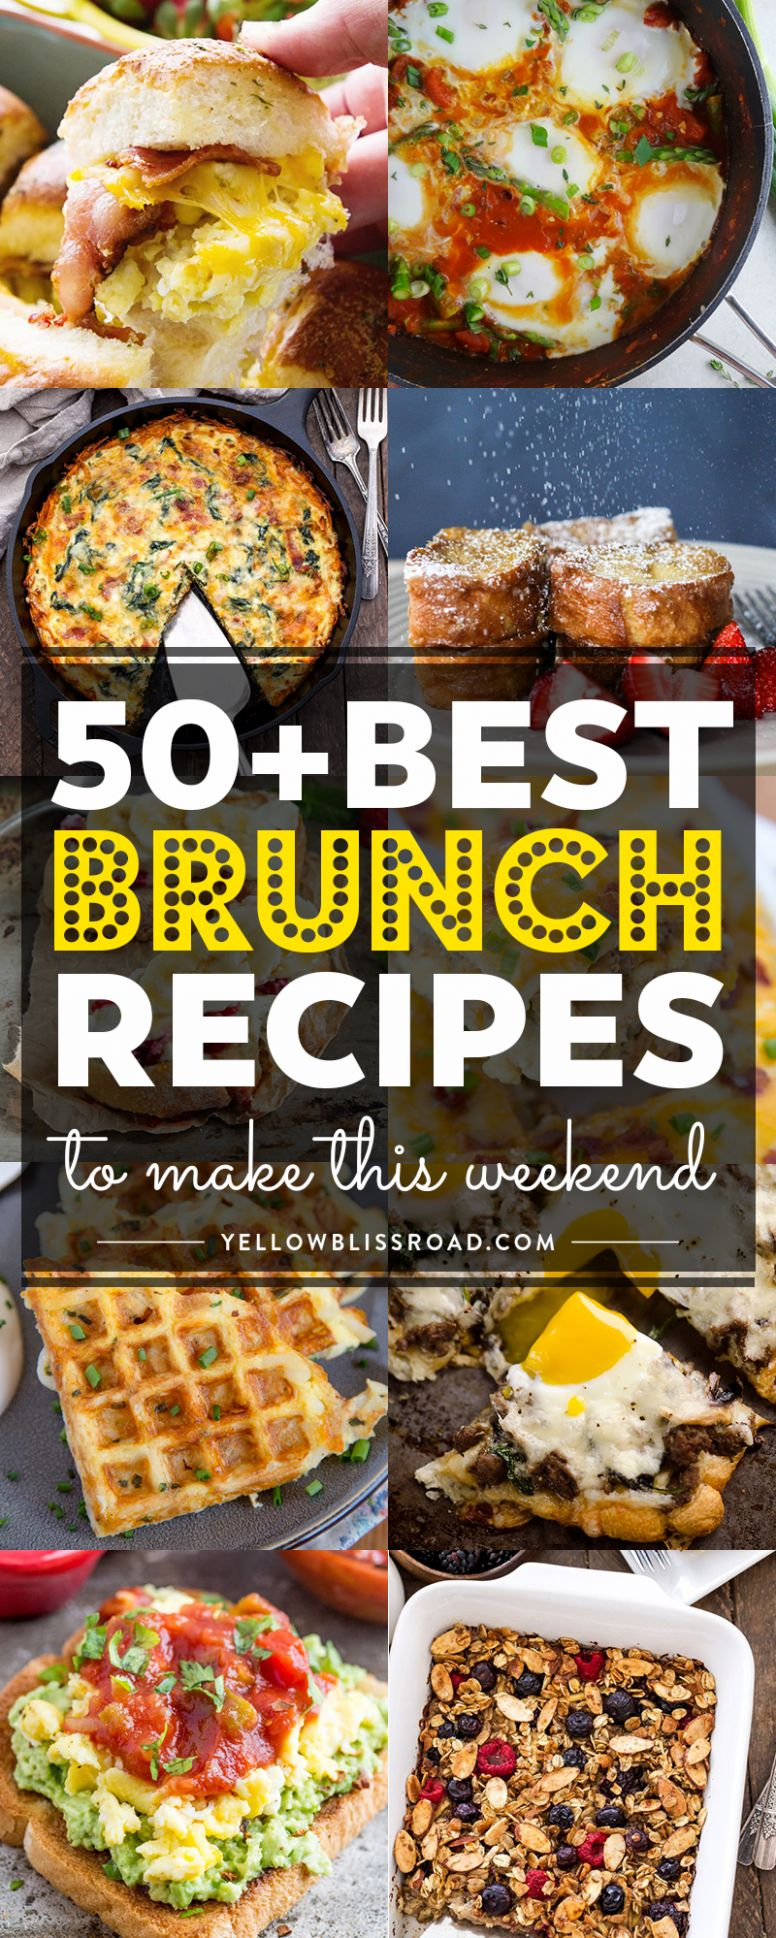 9 of the Best Brunch Recipes to Make this Weekend - Breakfast Recipes Large Groups